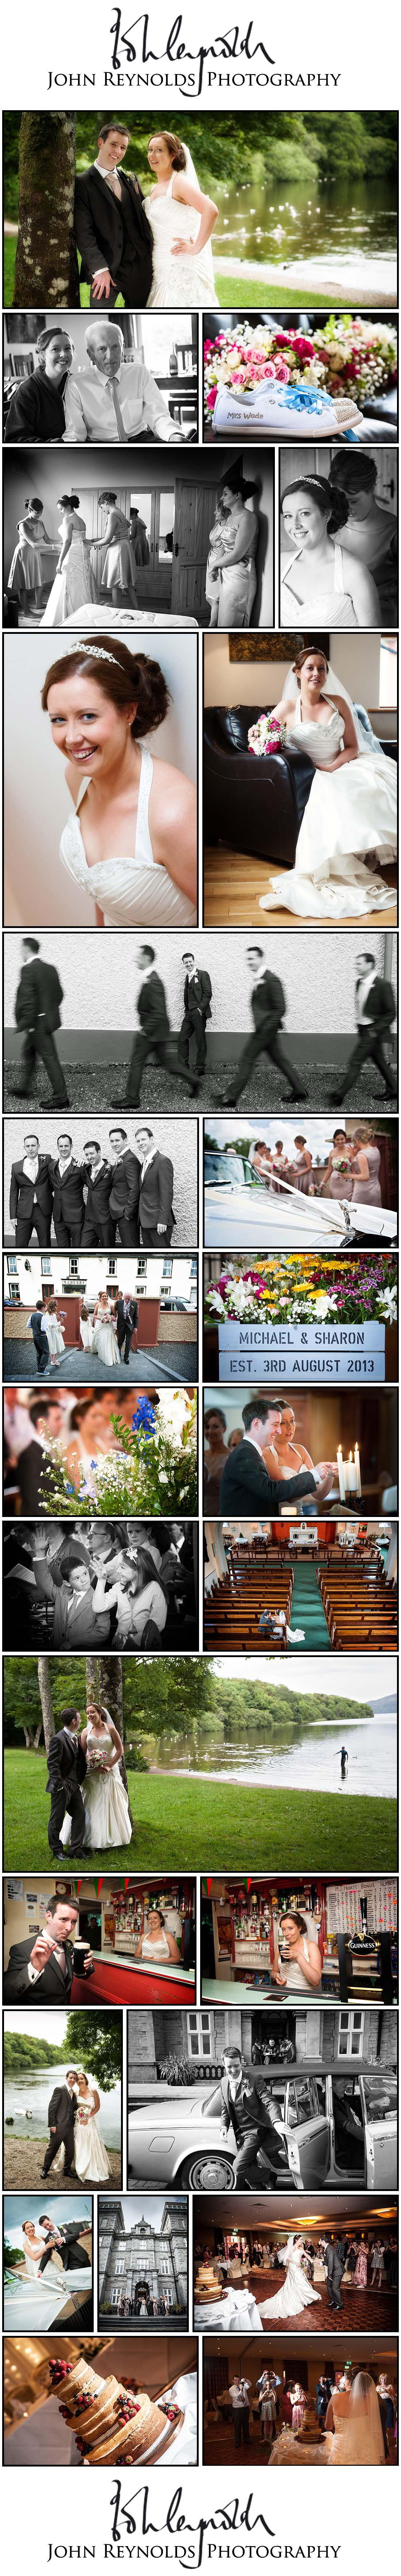 Blog Collage-Sharon & Mick